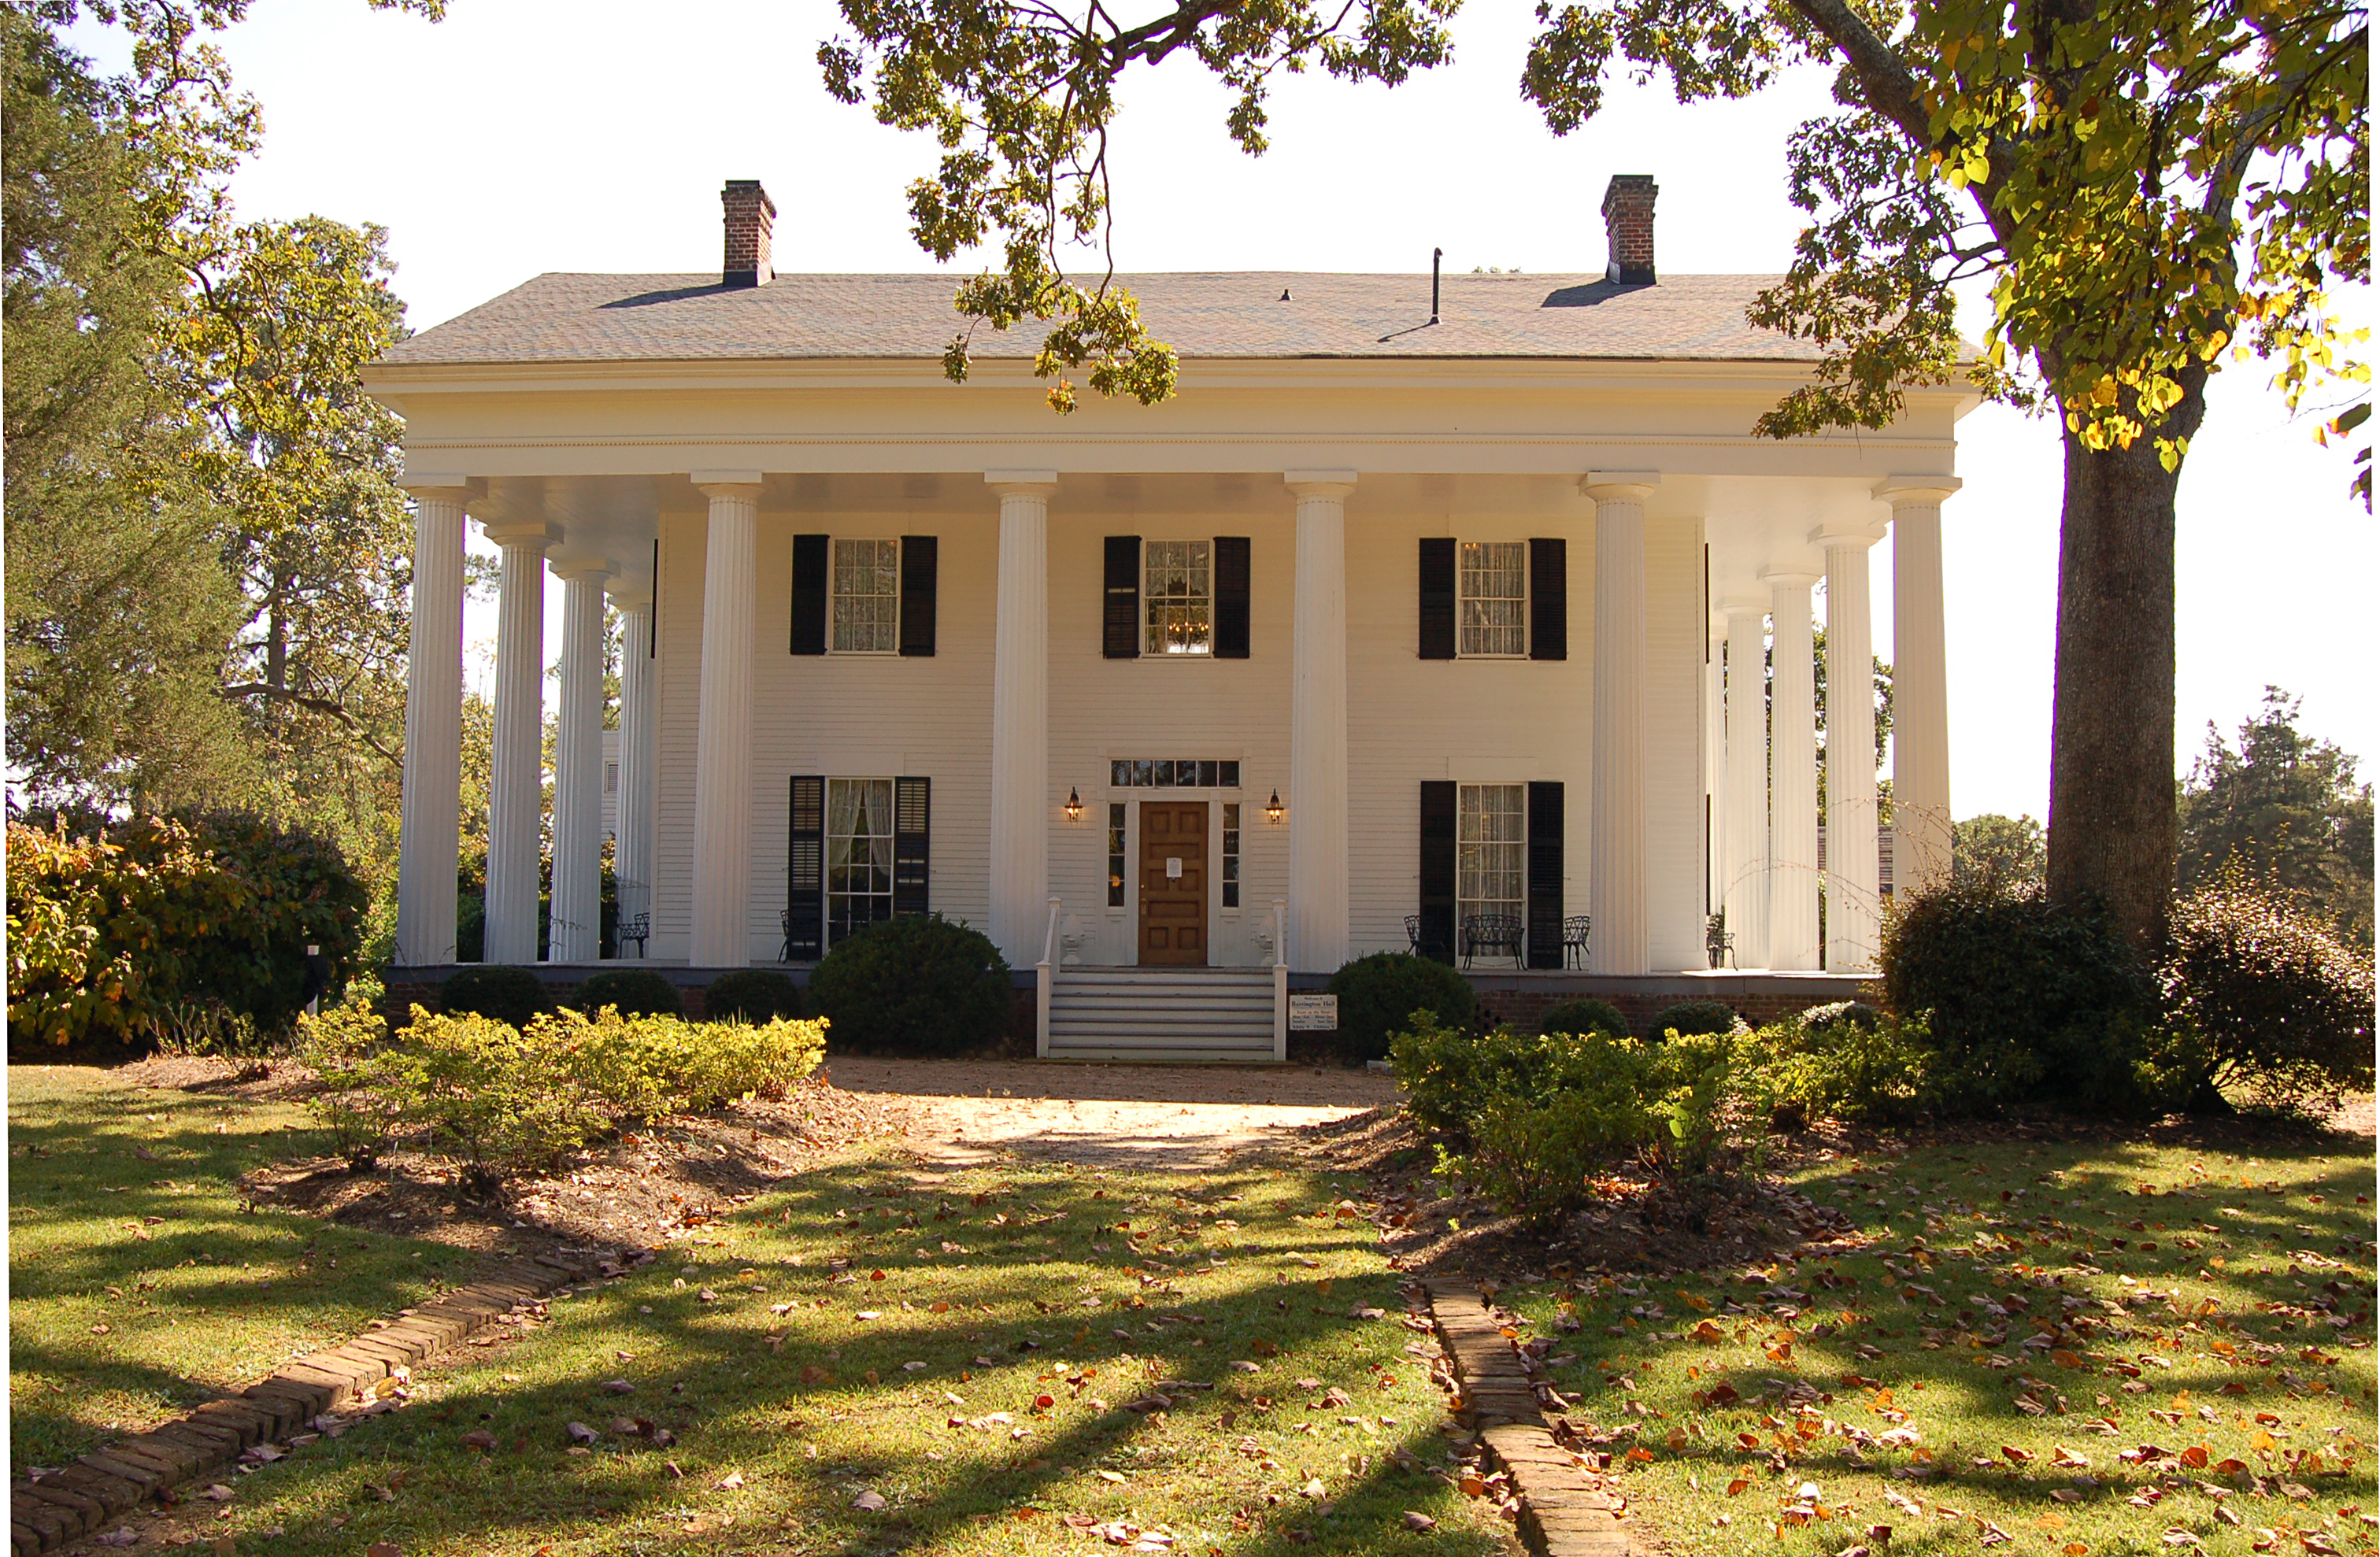 The history of the antebellum plantation style home Antebellum plantations for sale